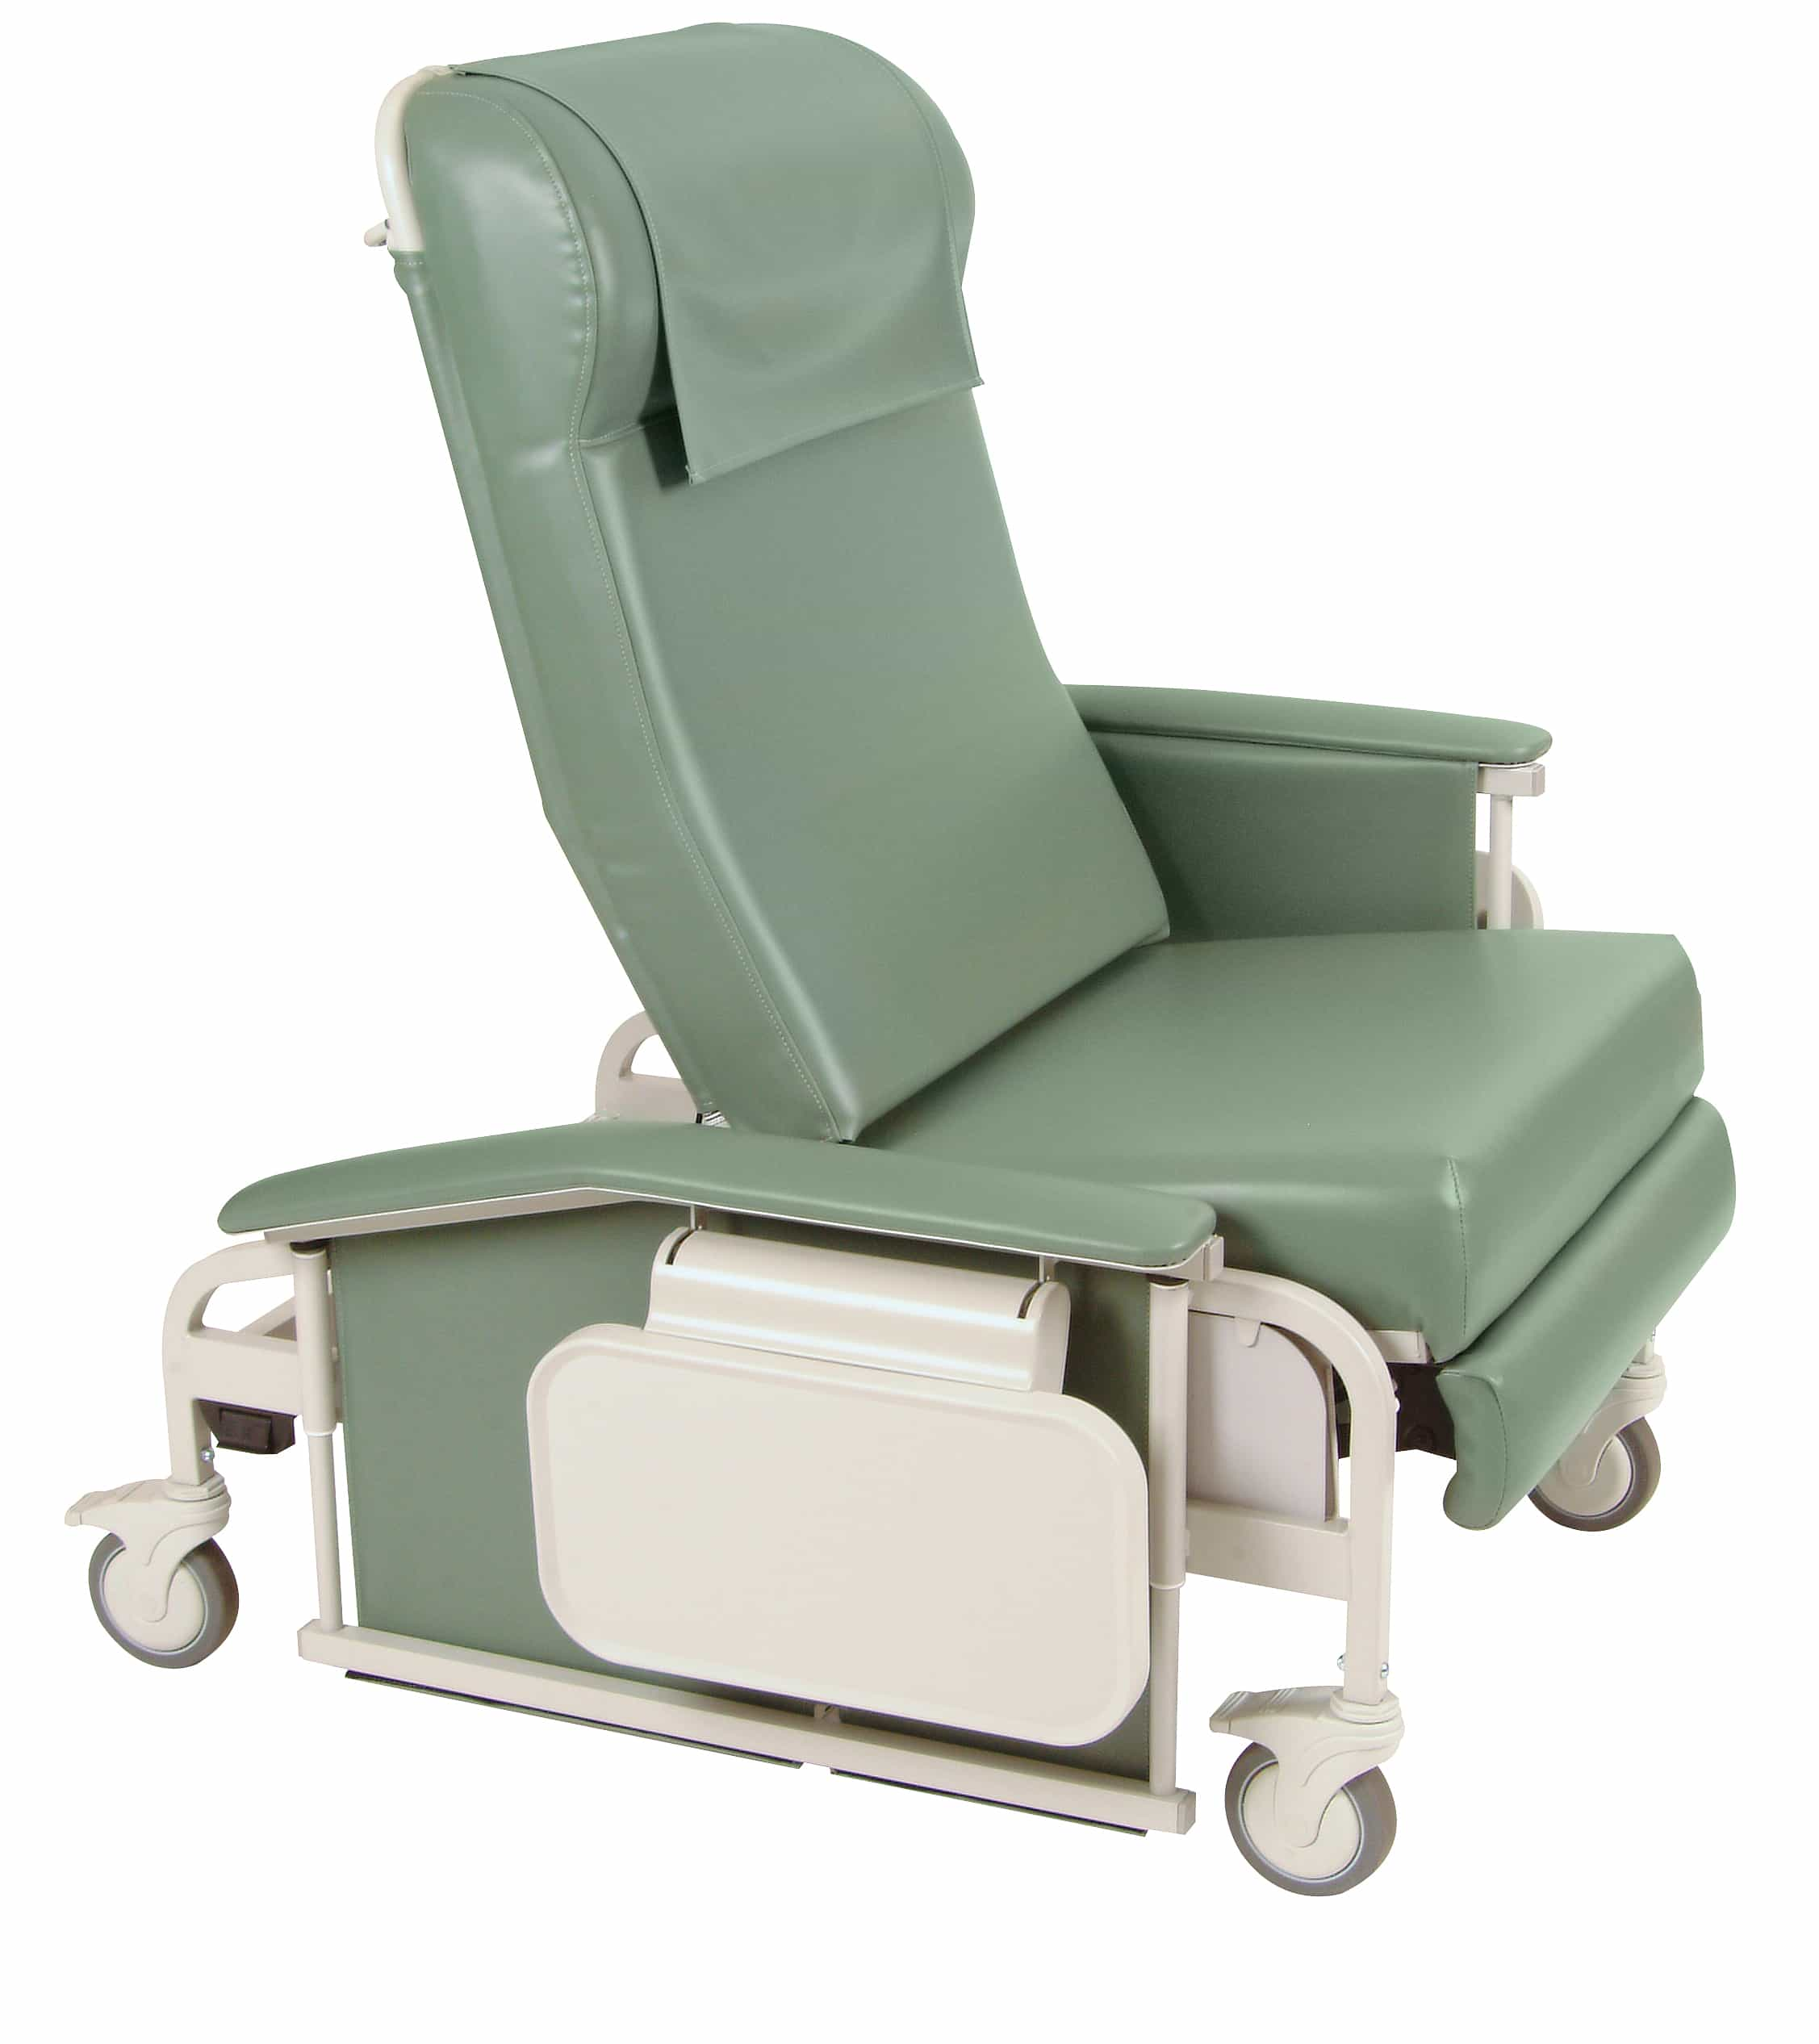 Clinical Recliners & Chairs Trendelenburg